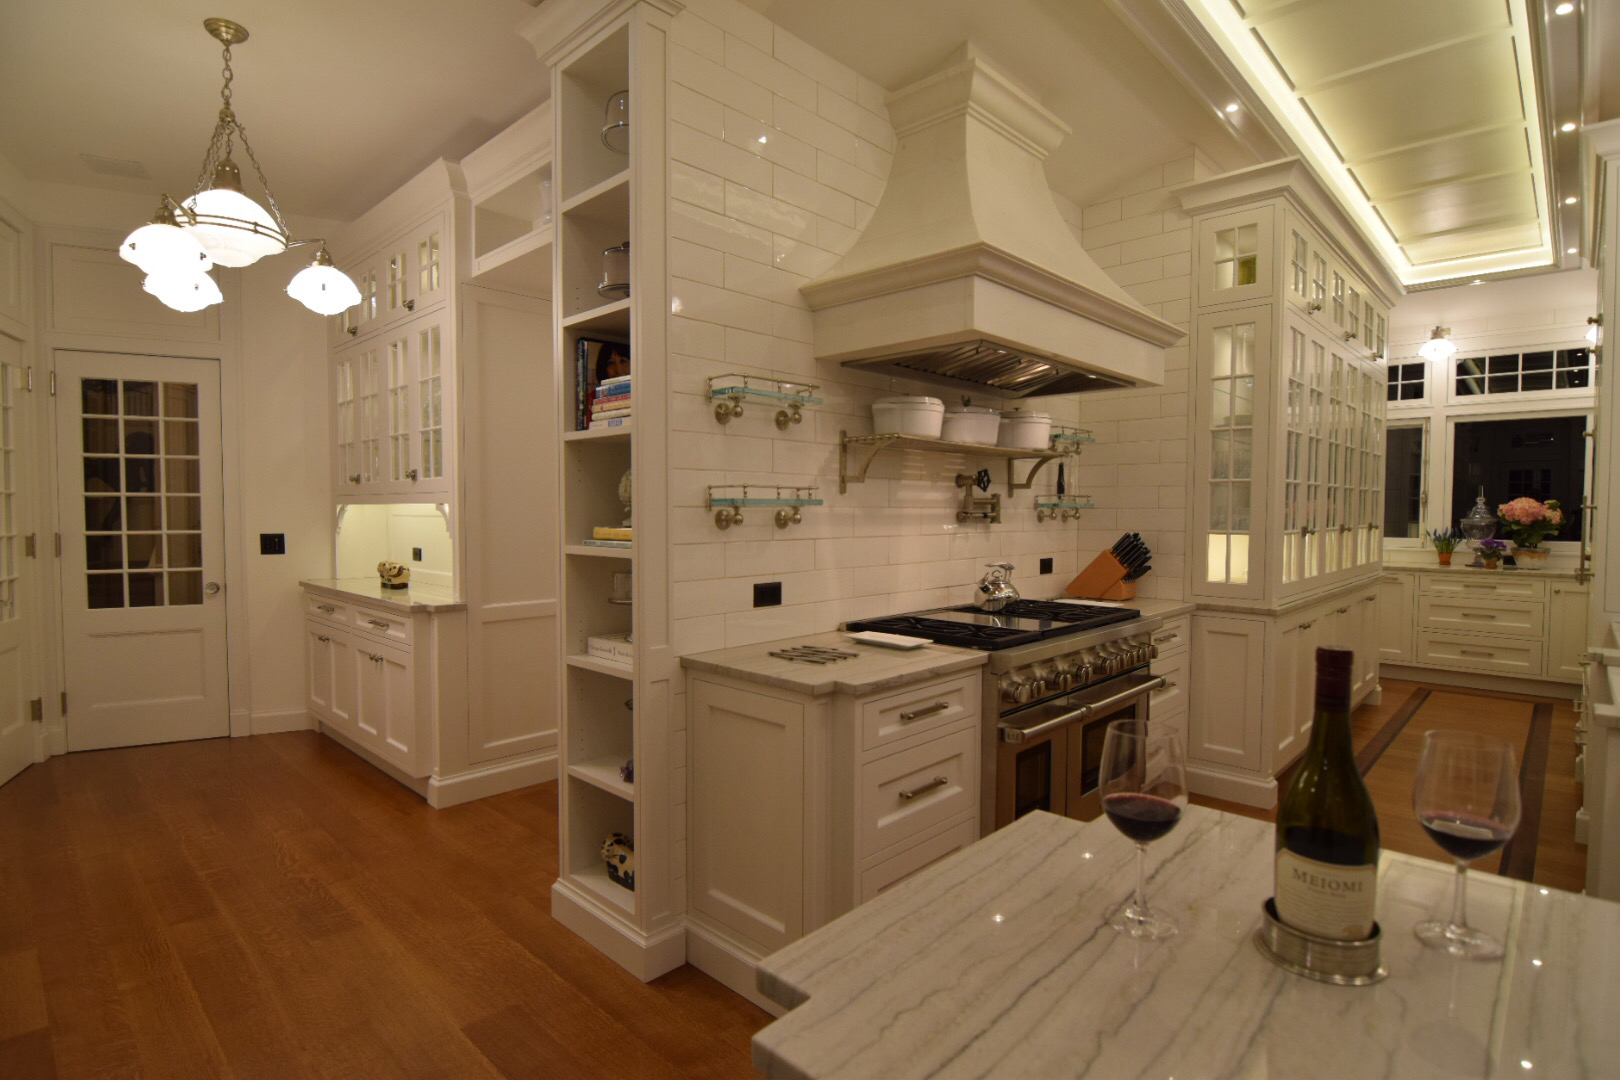 traditional-custom-kitchen-with-face-frame-inset-cabinets-and-1890s-style-custom-architectural-doors-in-white-polyurethane-finish.jpg